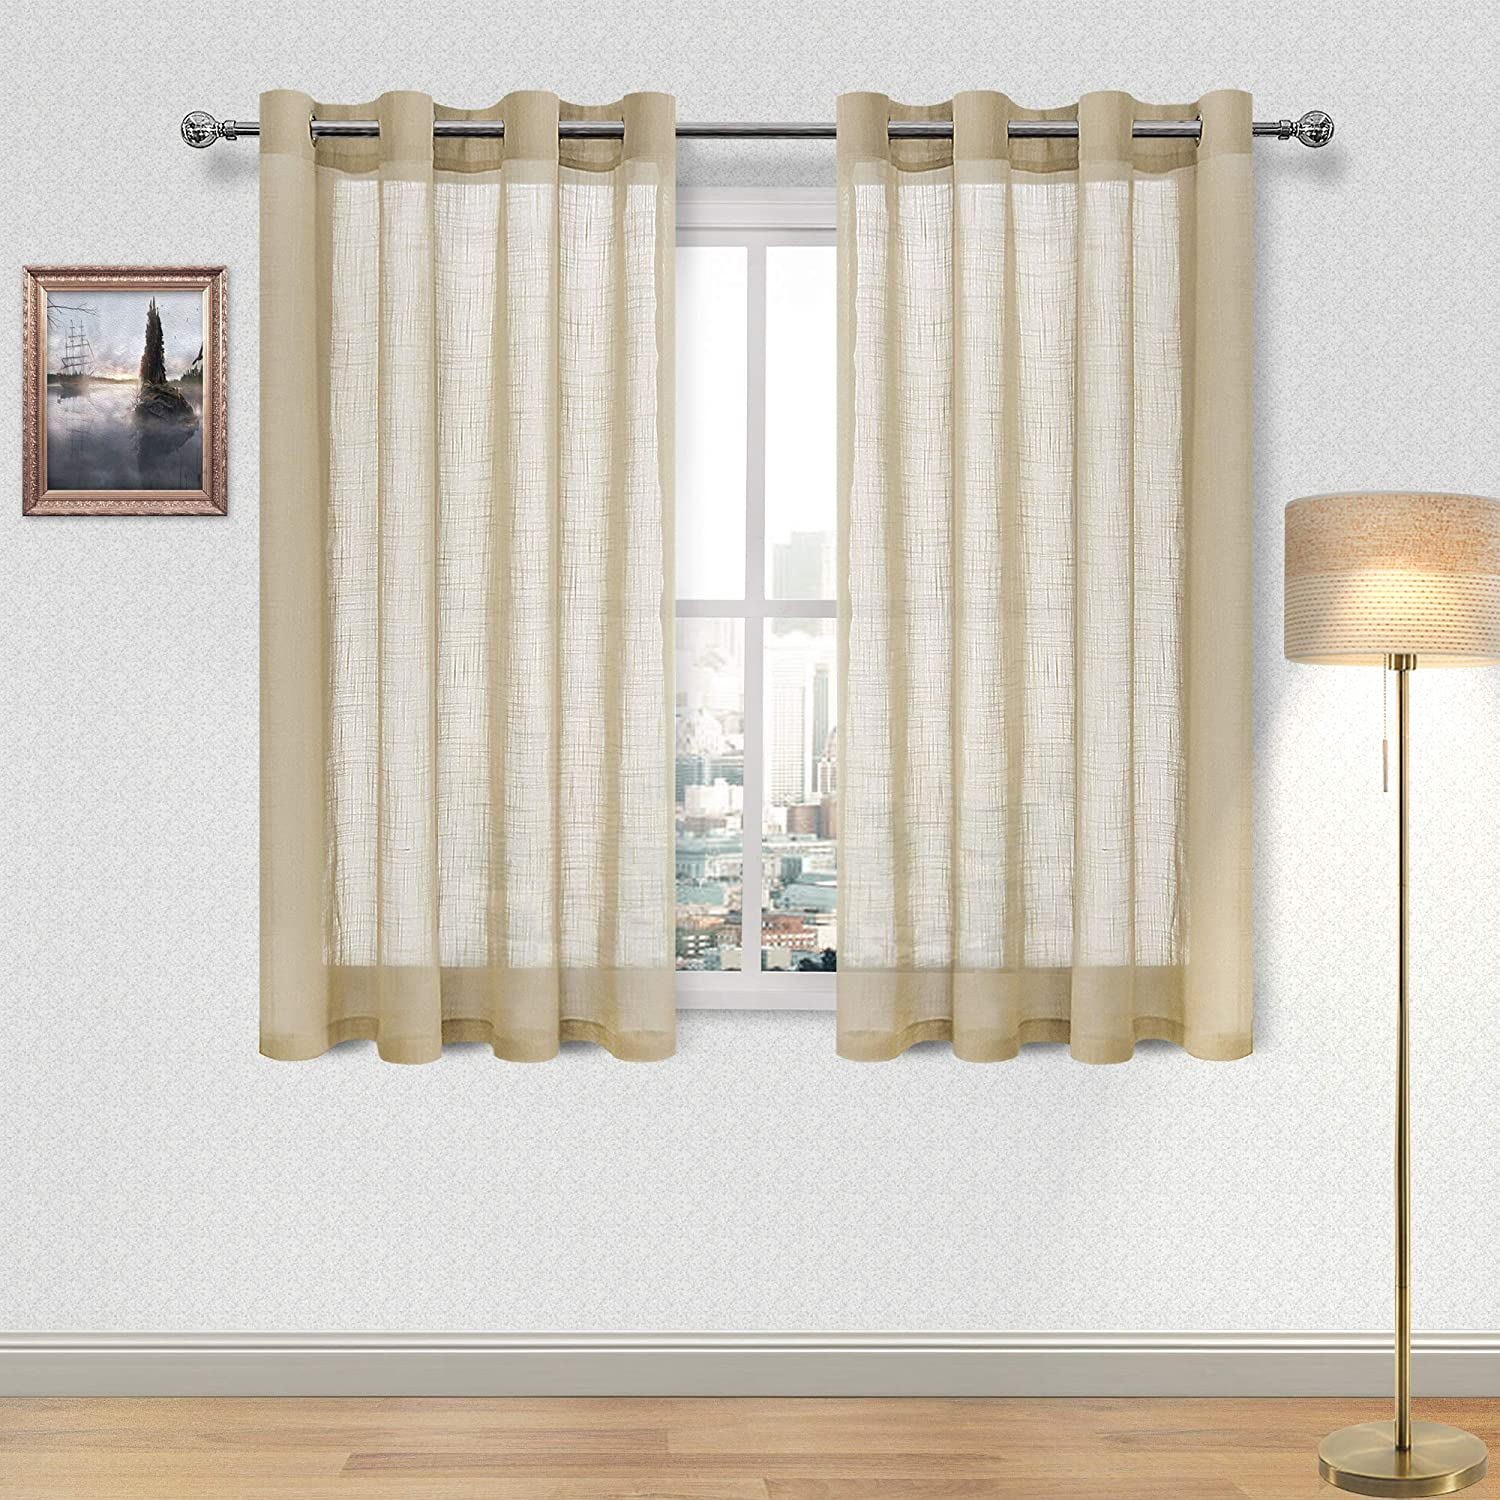 DWCN Faux Linen Sheer Curtain - Window Grommet Voile Curtains for Bedroom Living Room 52 x 54 Inch Length, 2 Panels, Beige